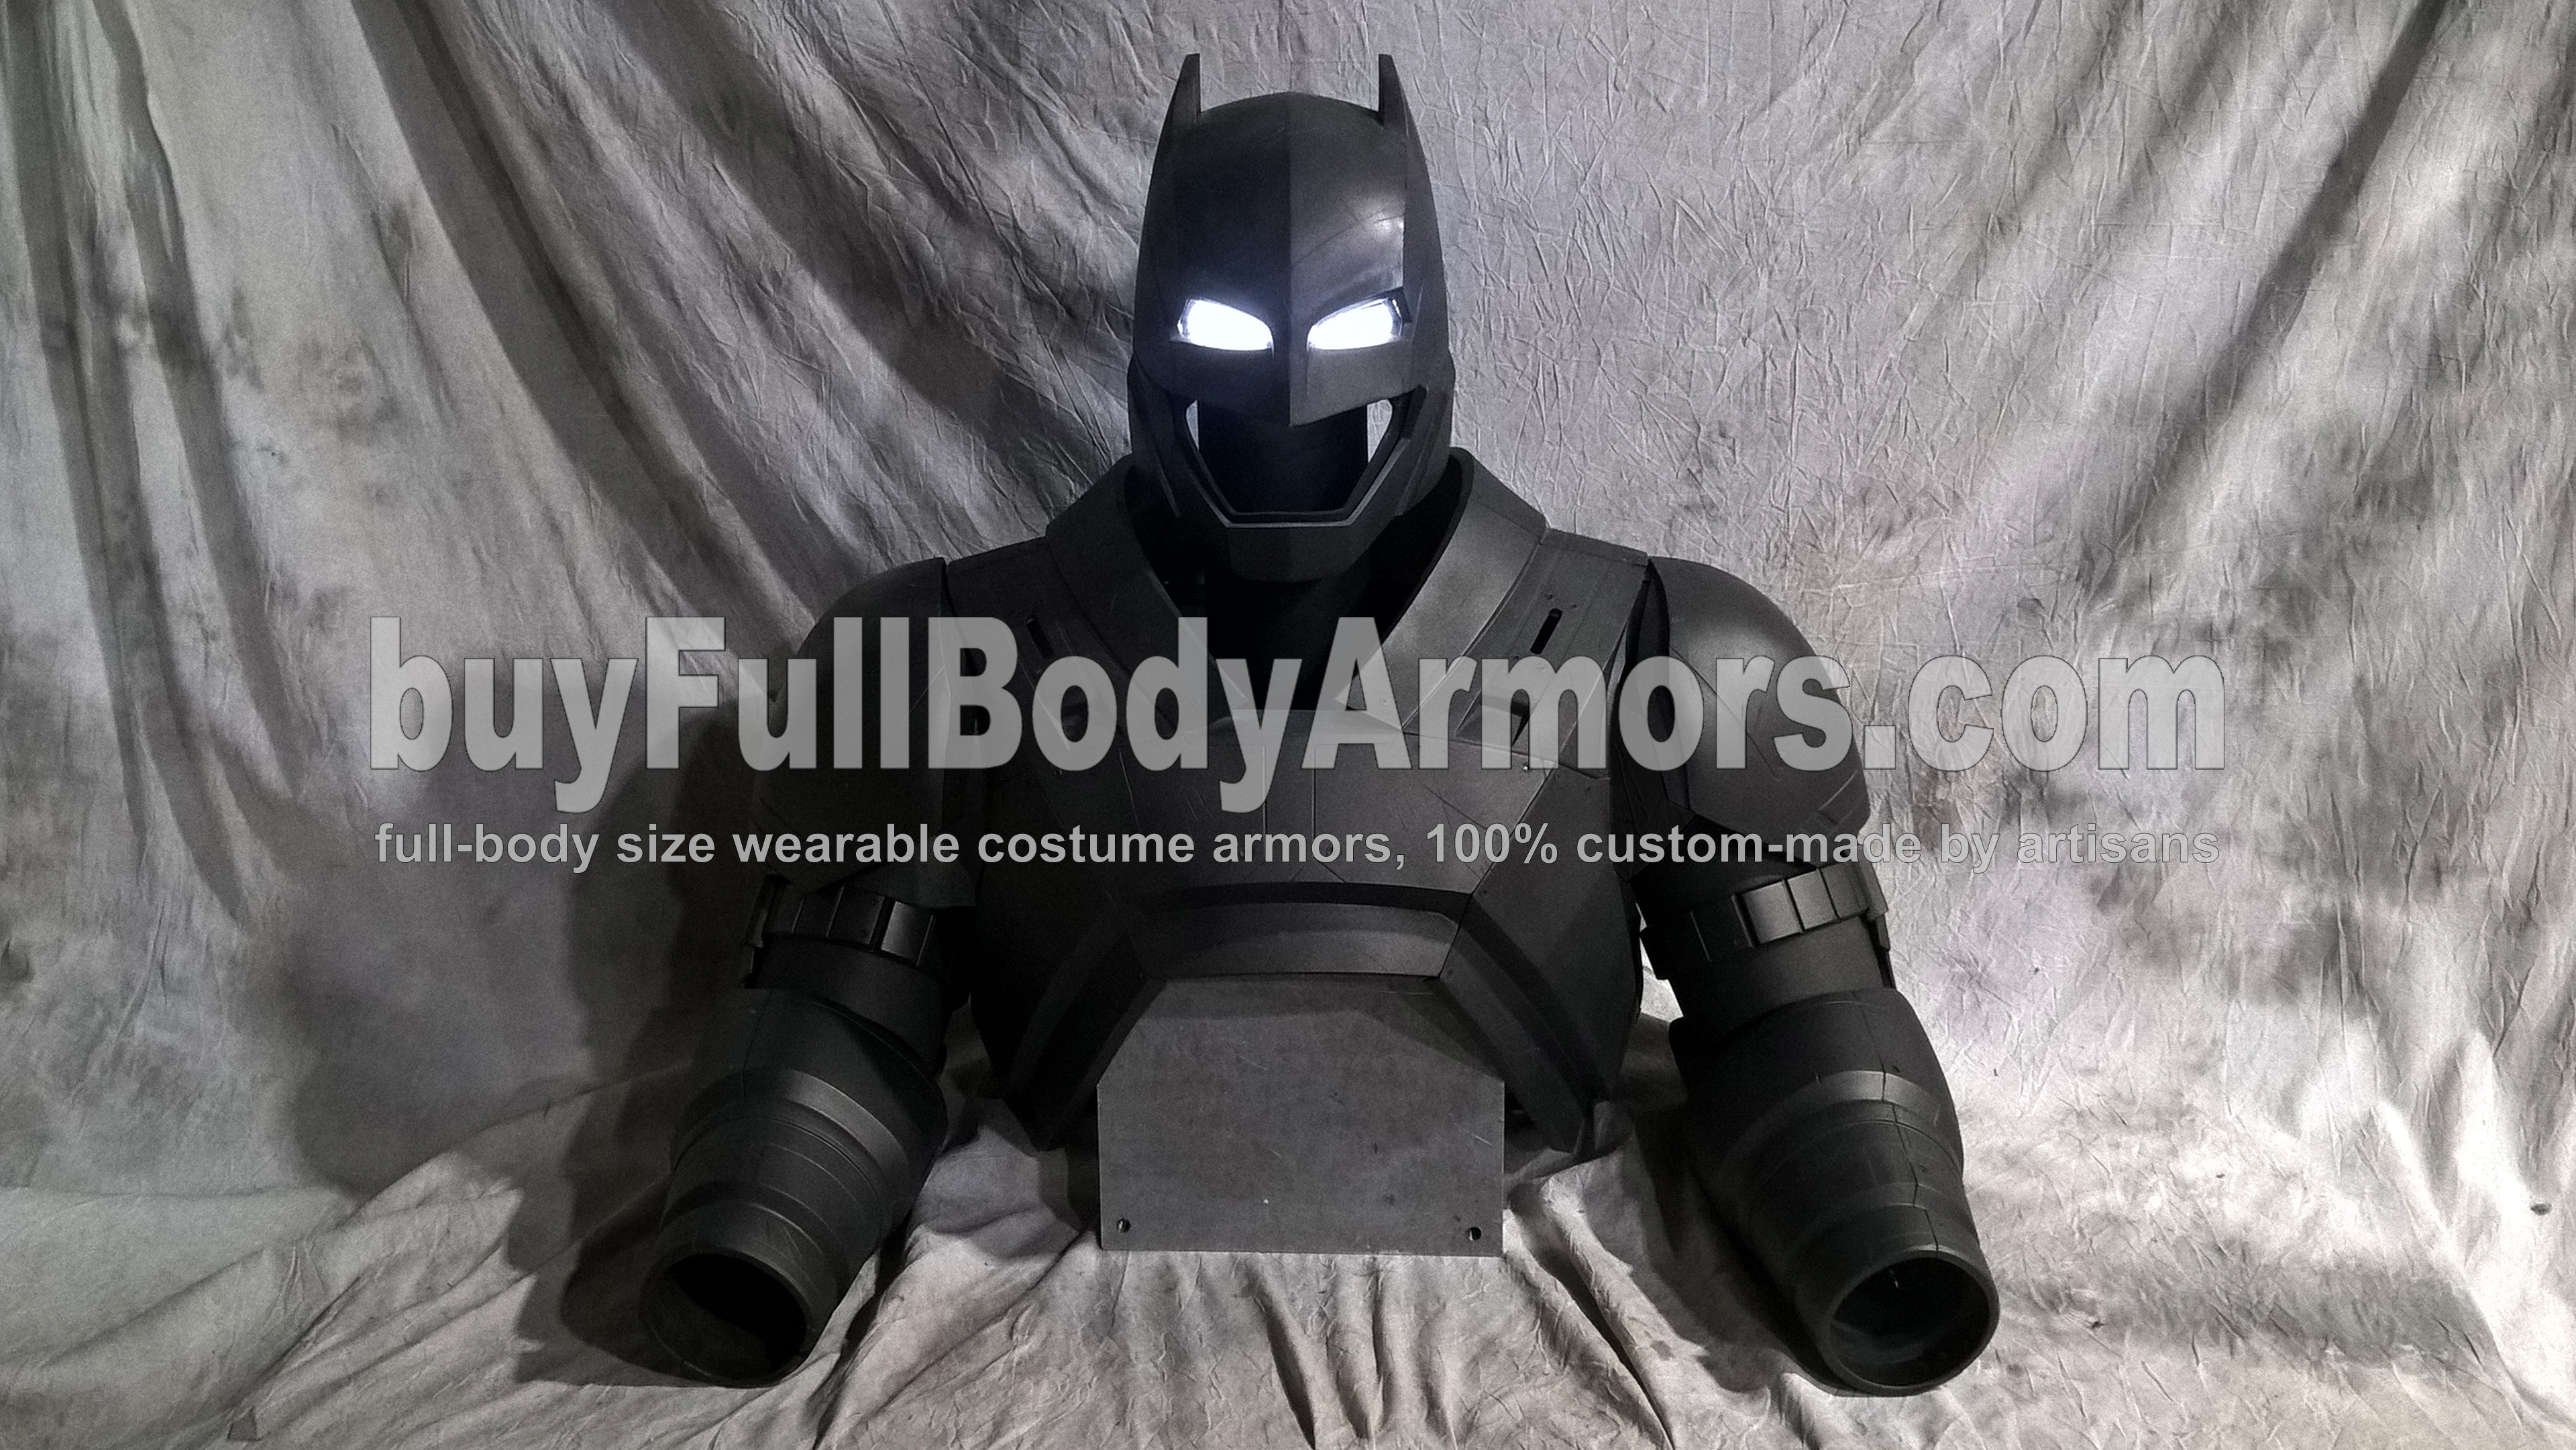 The New Wearable Armored Batsuit - the Batman Armor Costume Suit from the Movie Batman v Superman: Dawn Of Justice - the Top Half 1